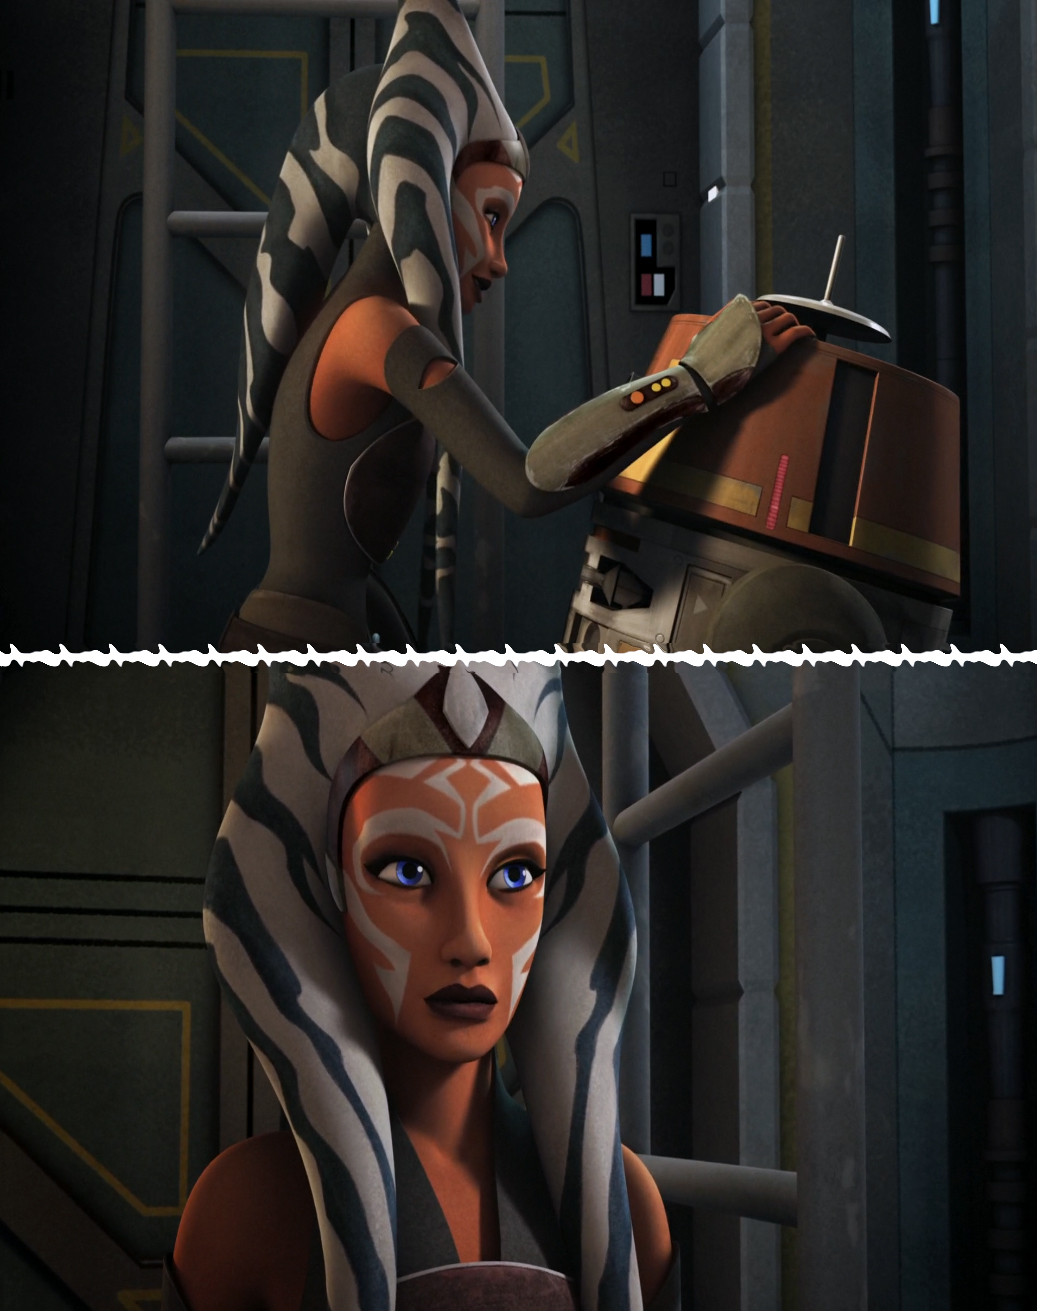 Star wars ahsoka nackt video dounlaud exploited toons